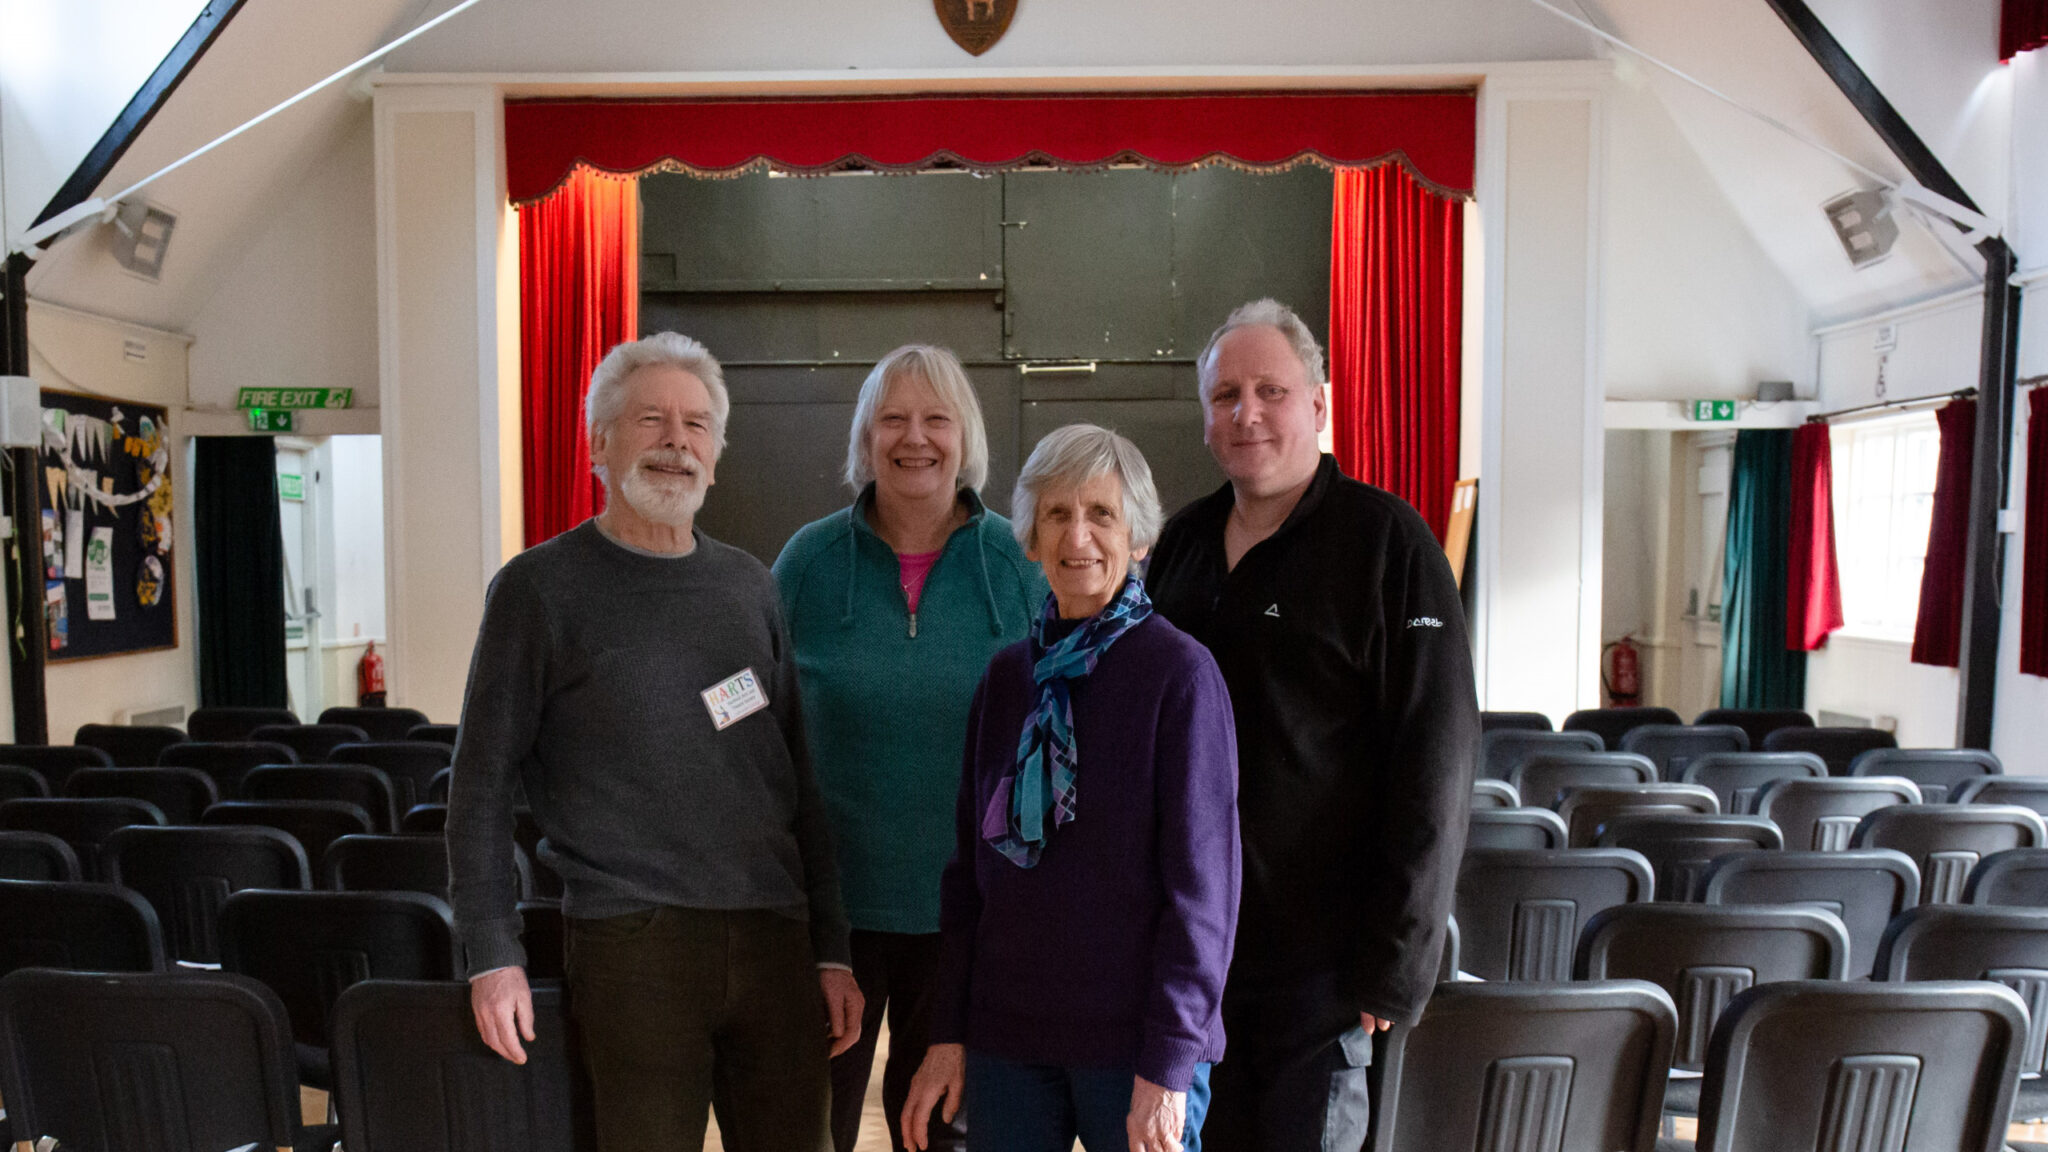 Four people n a line in front of a village hall stage